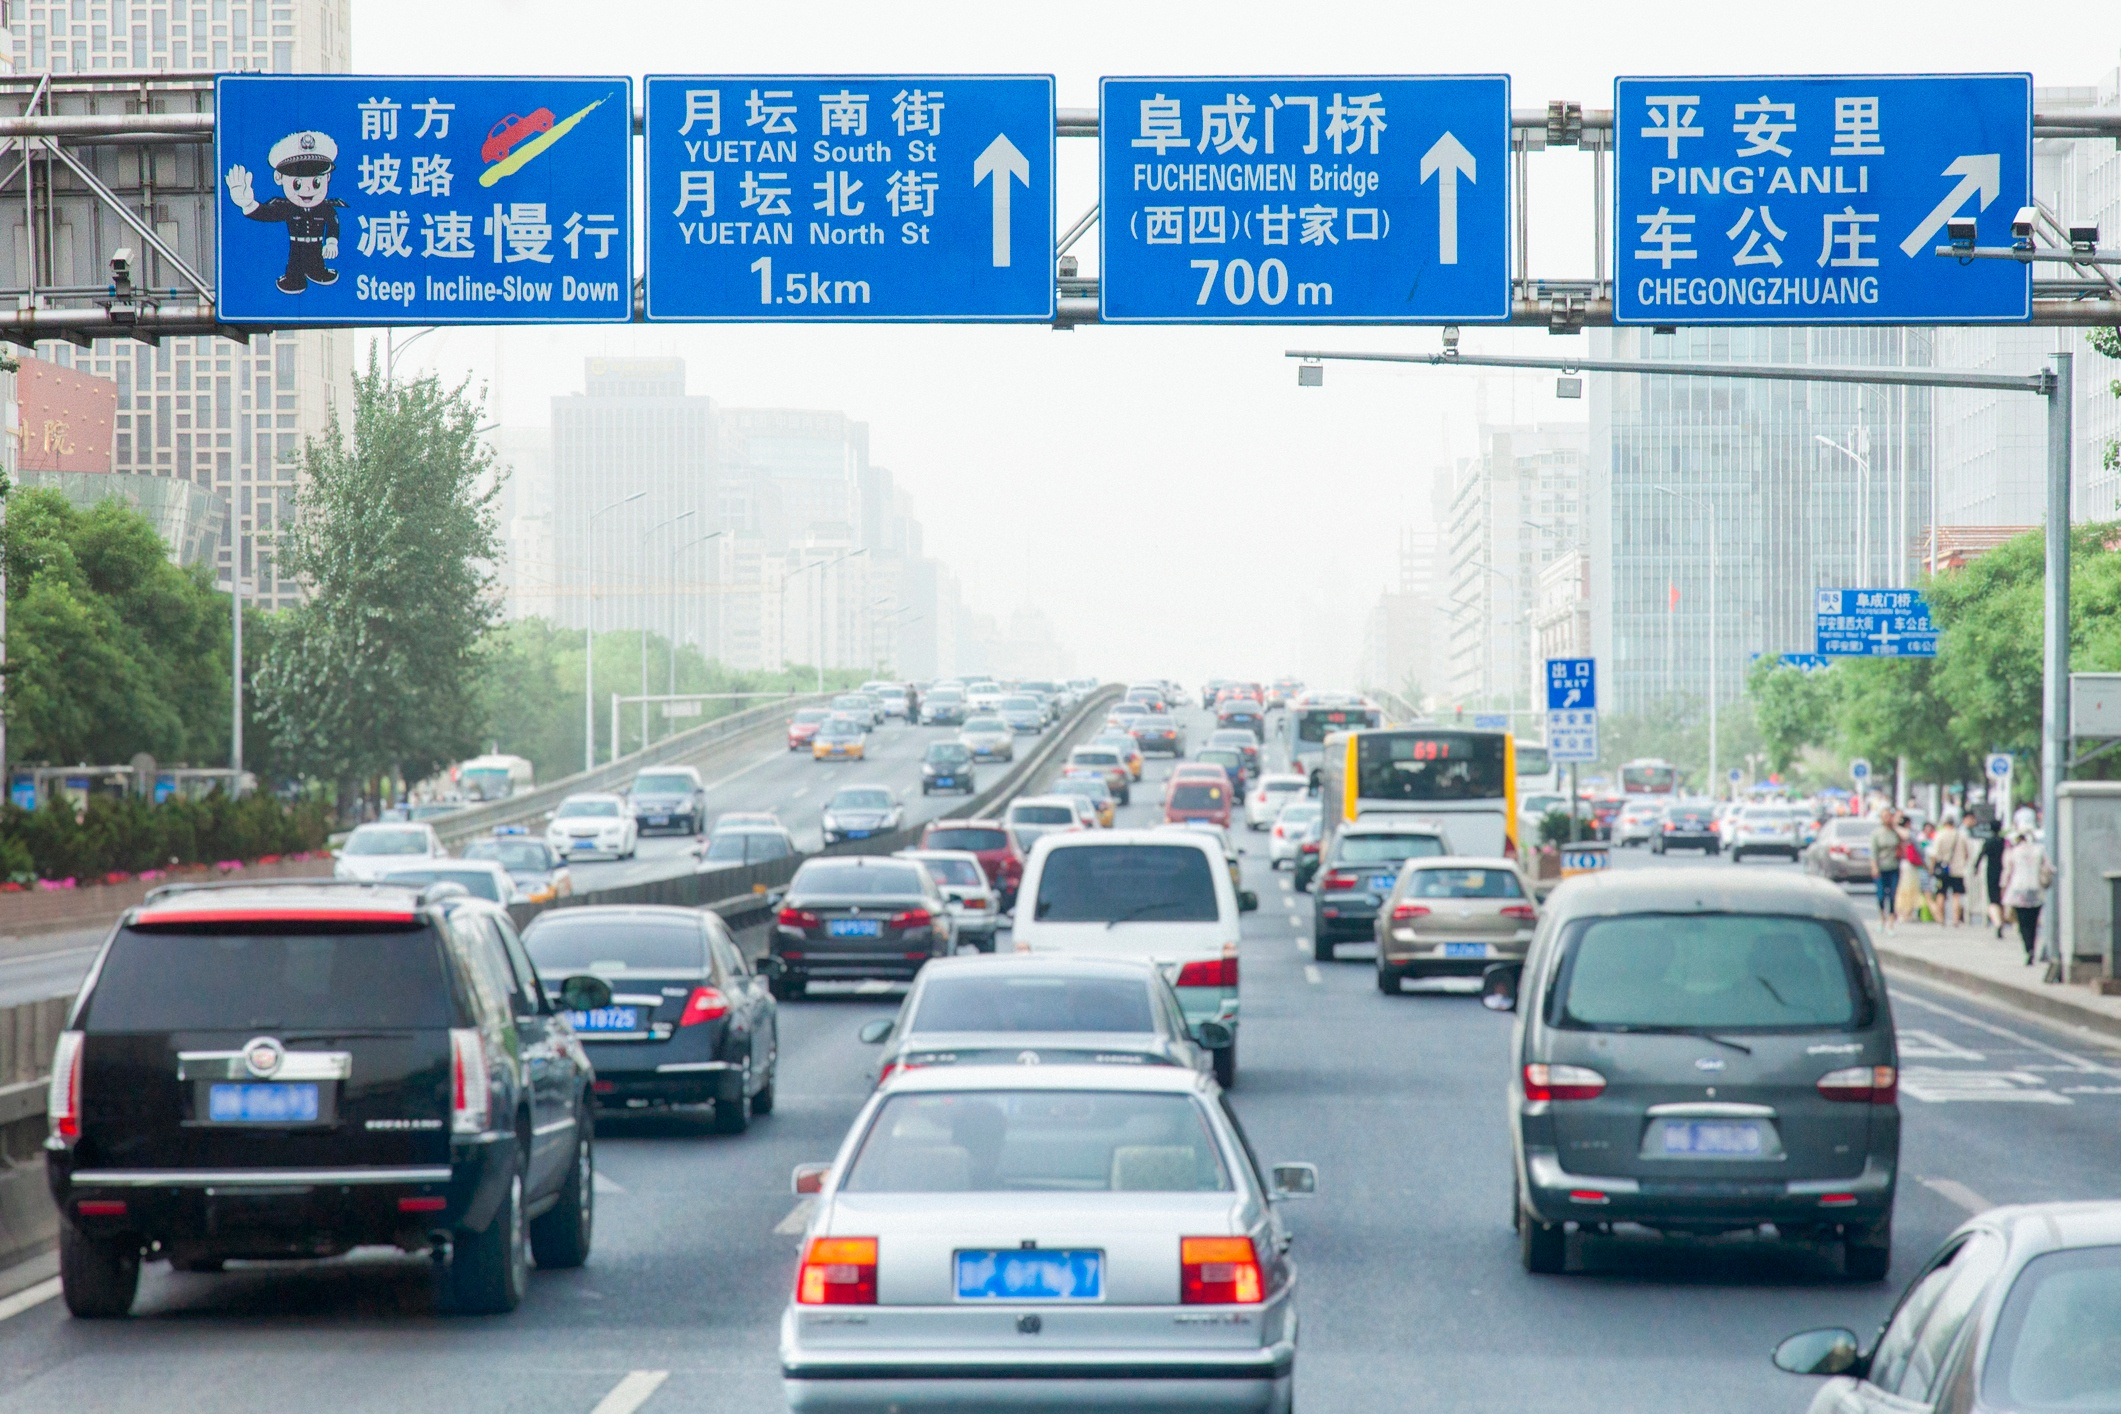 Industry News: Soaring Car Sales in China Drive Nitrile Glove Price Up